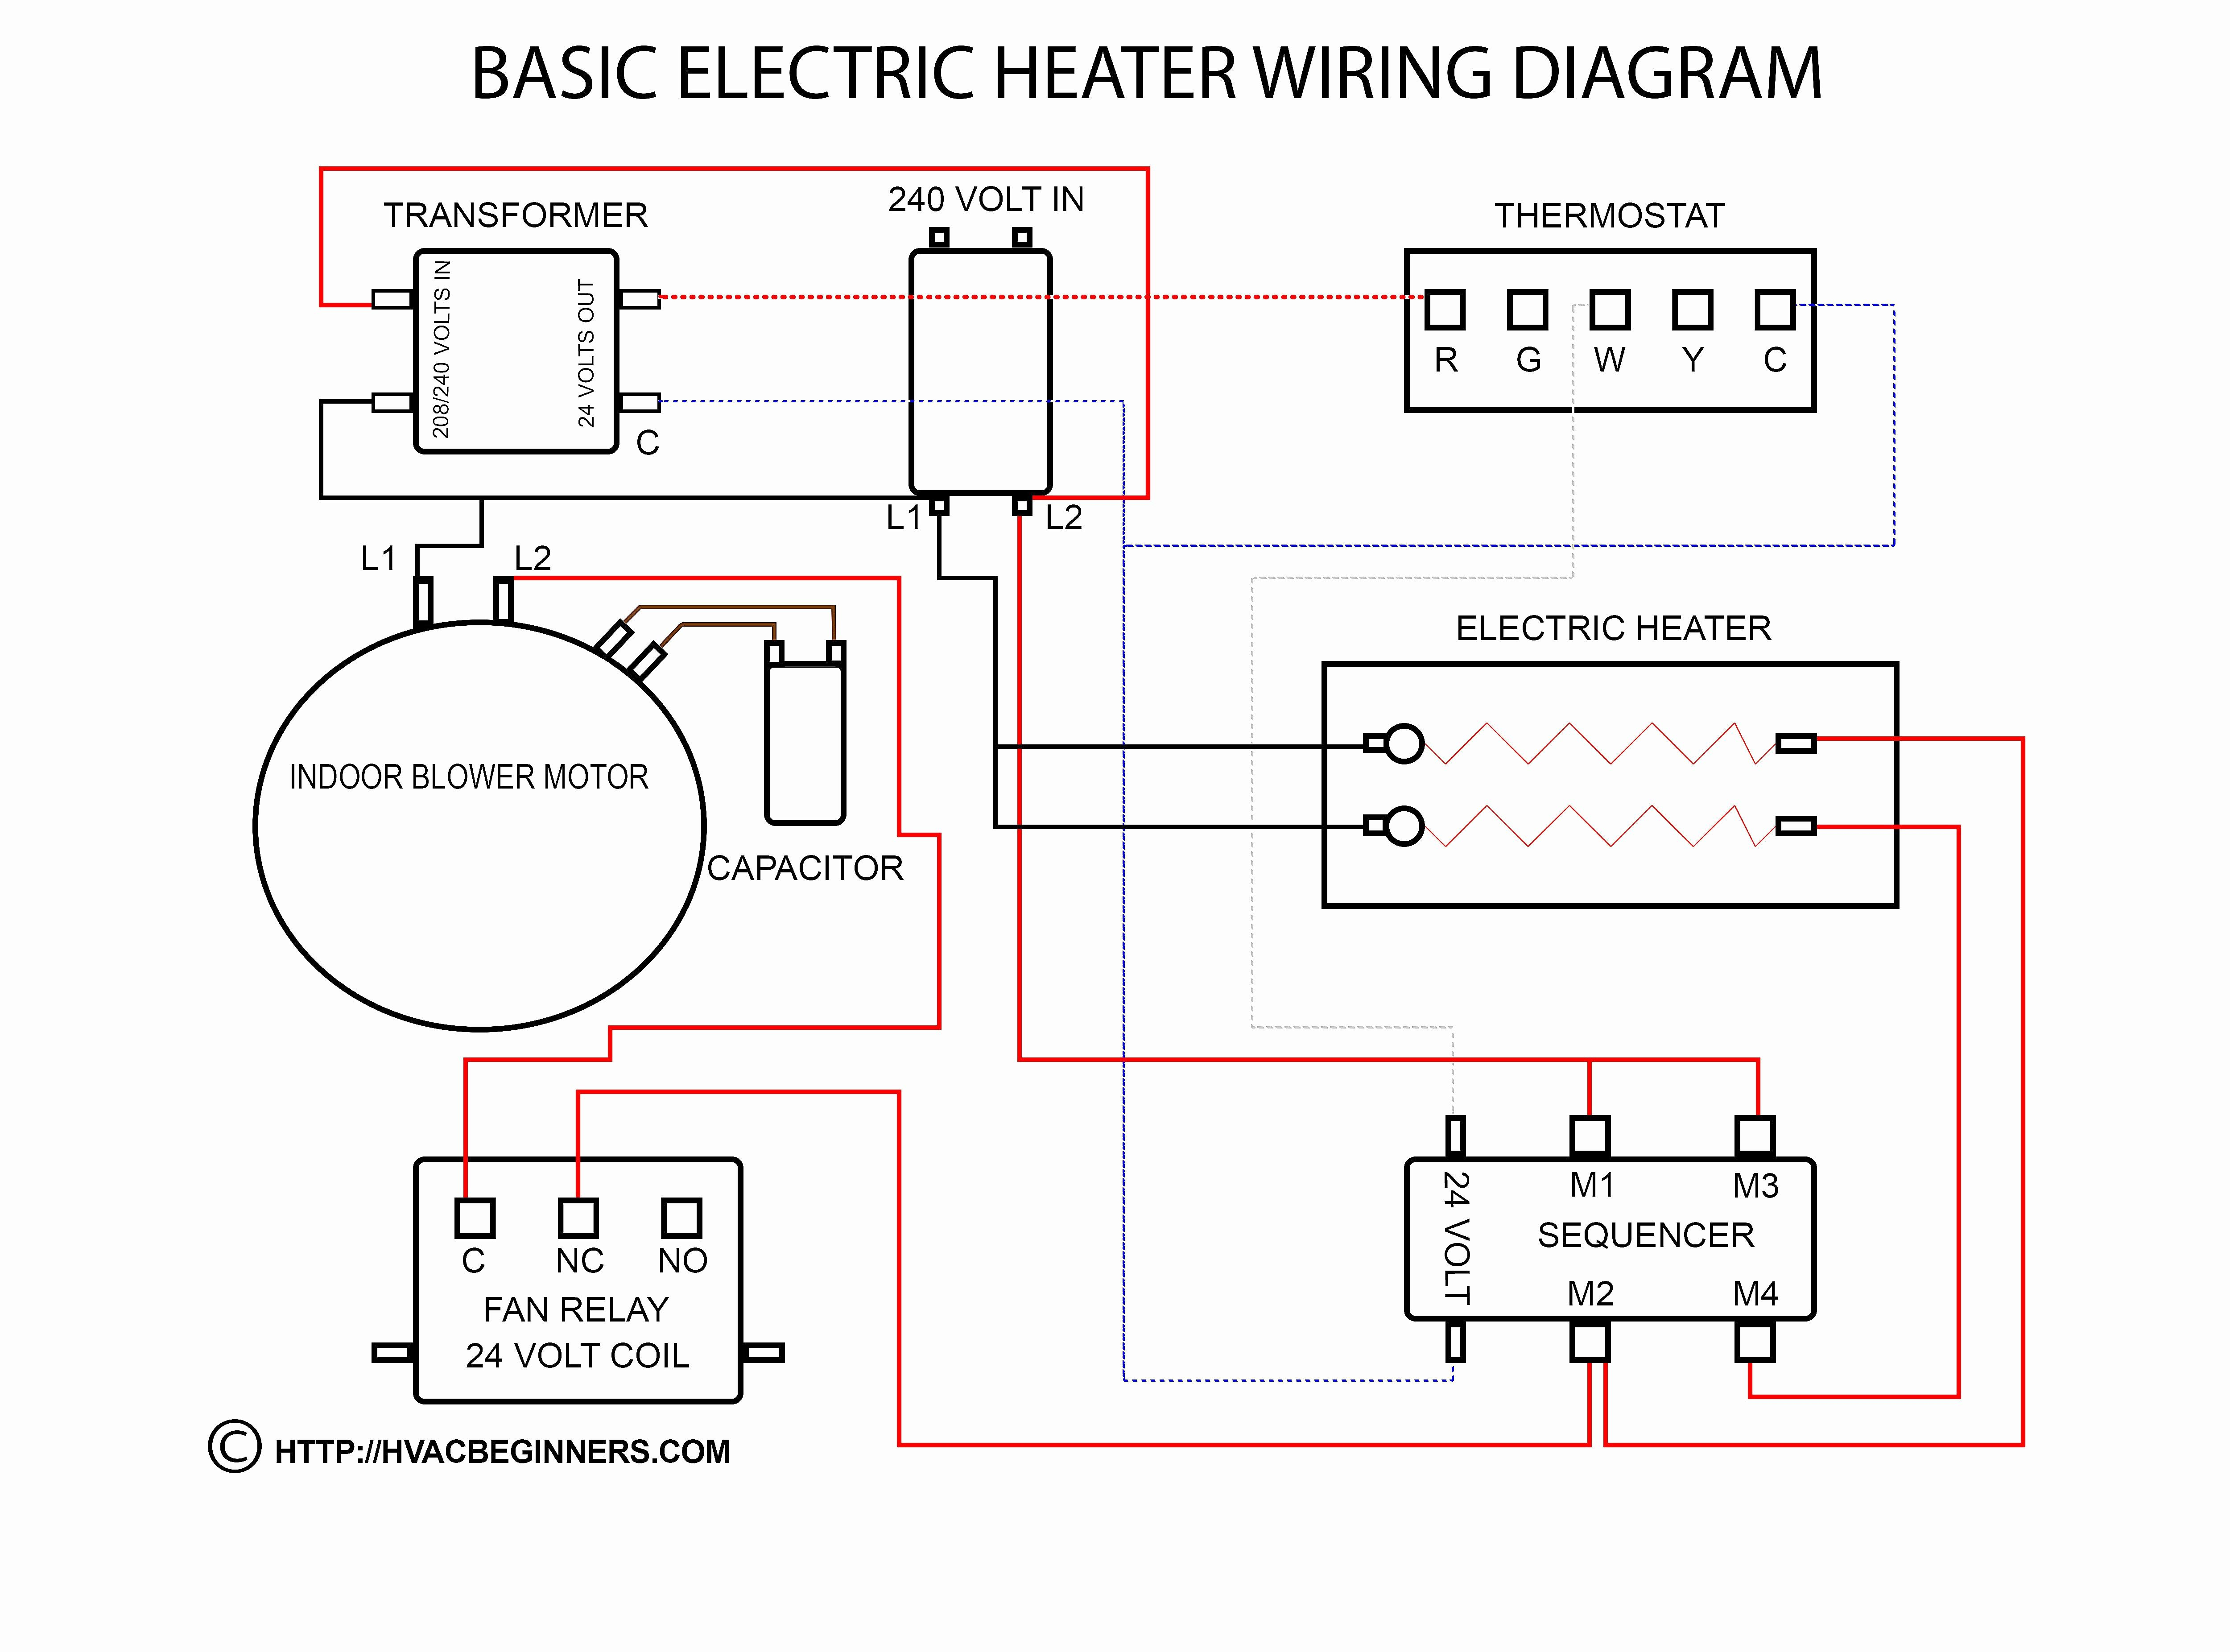 Rv Battery Disconnect Switch Wiring Diagram Luxury Travel Trailer - Rv Battery Disconnect Switch Wiring Diagram